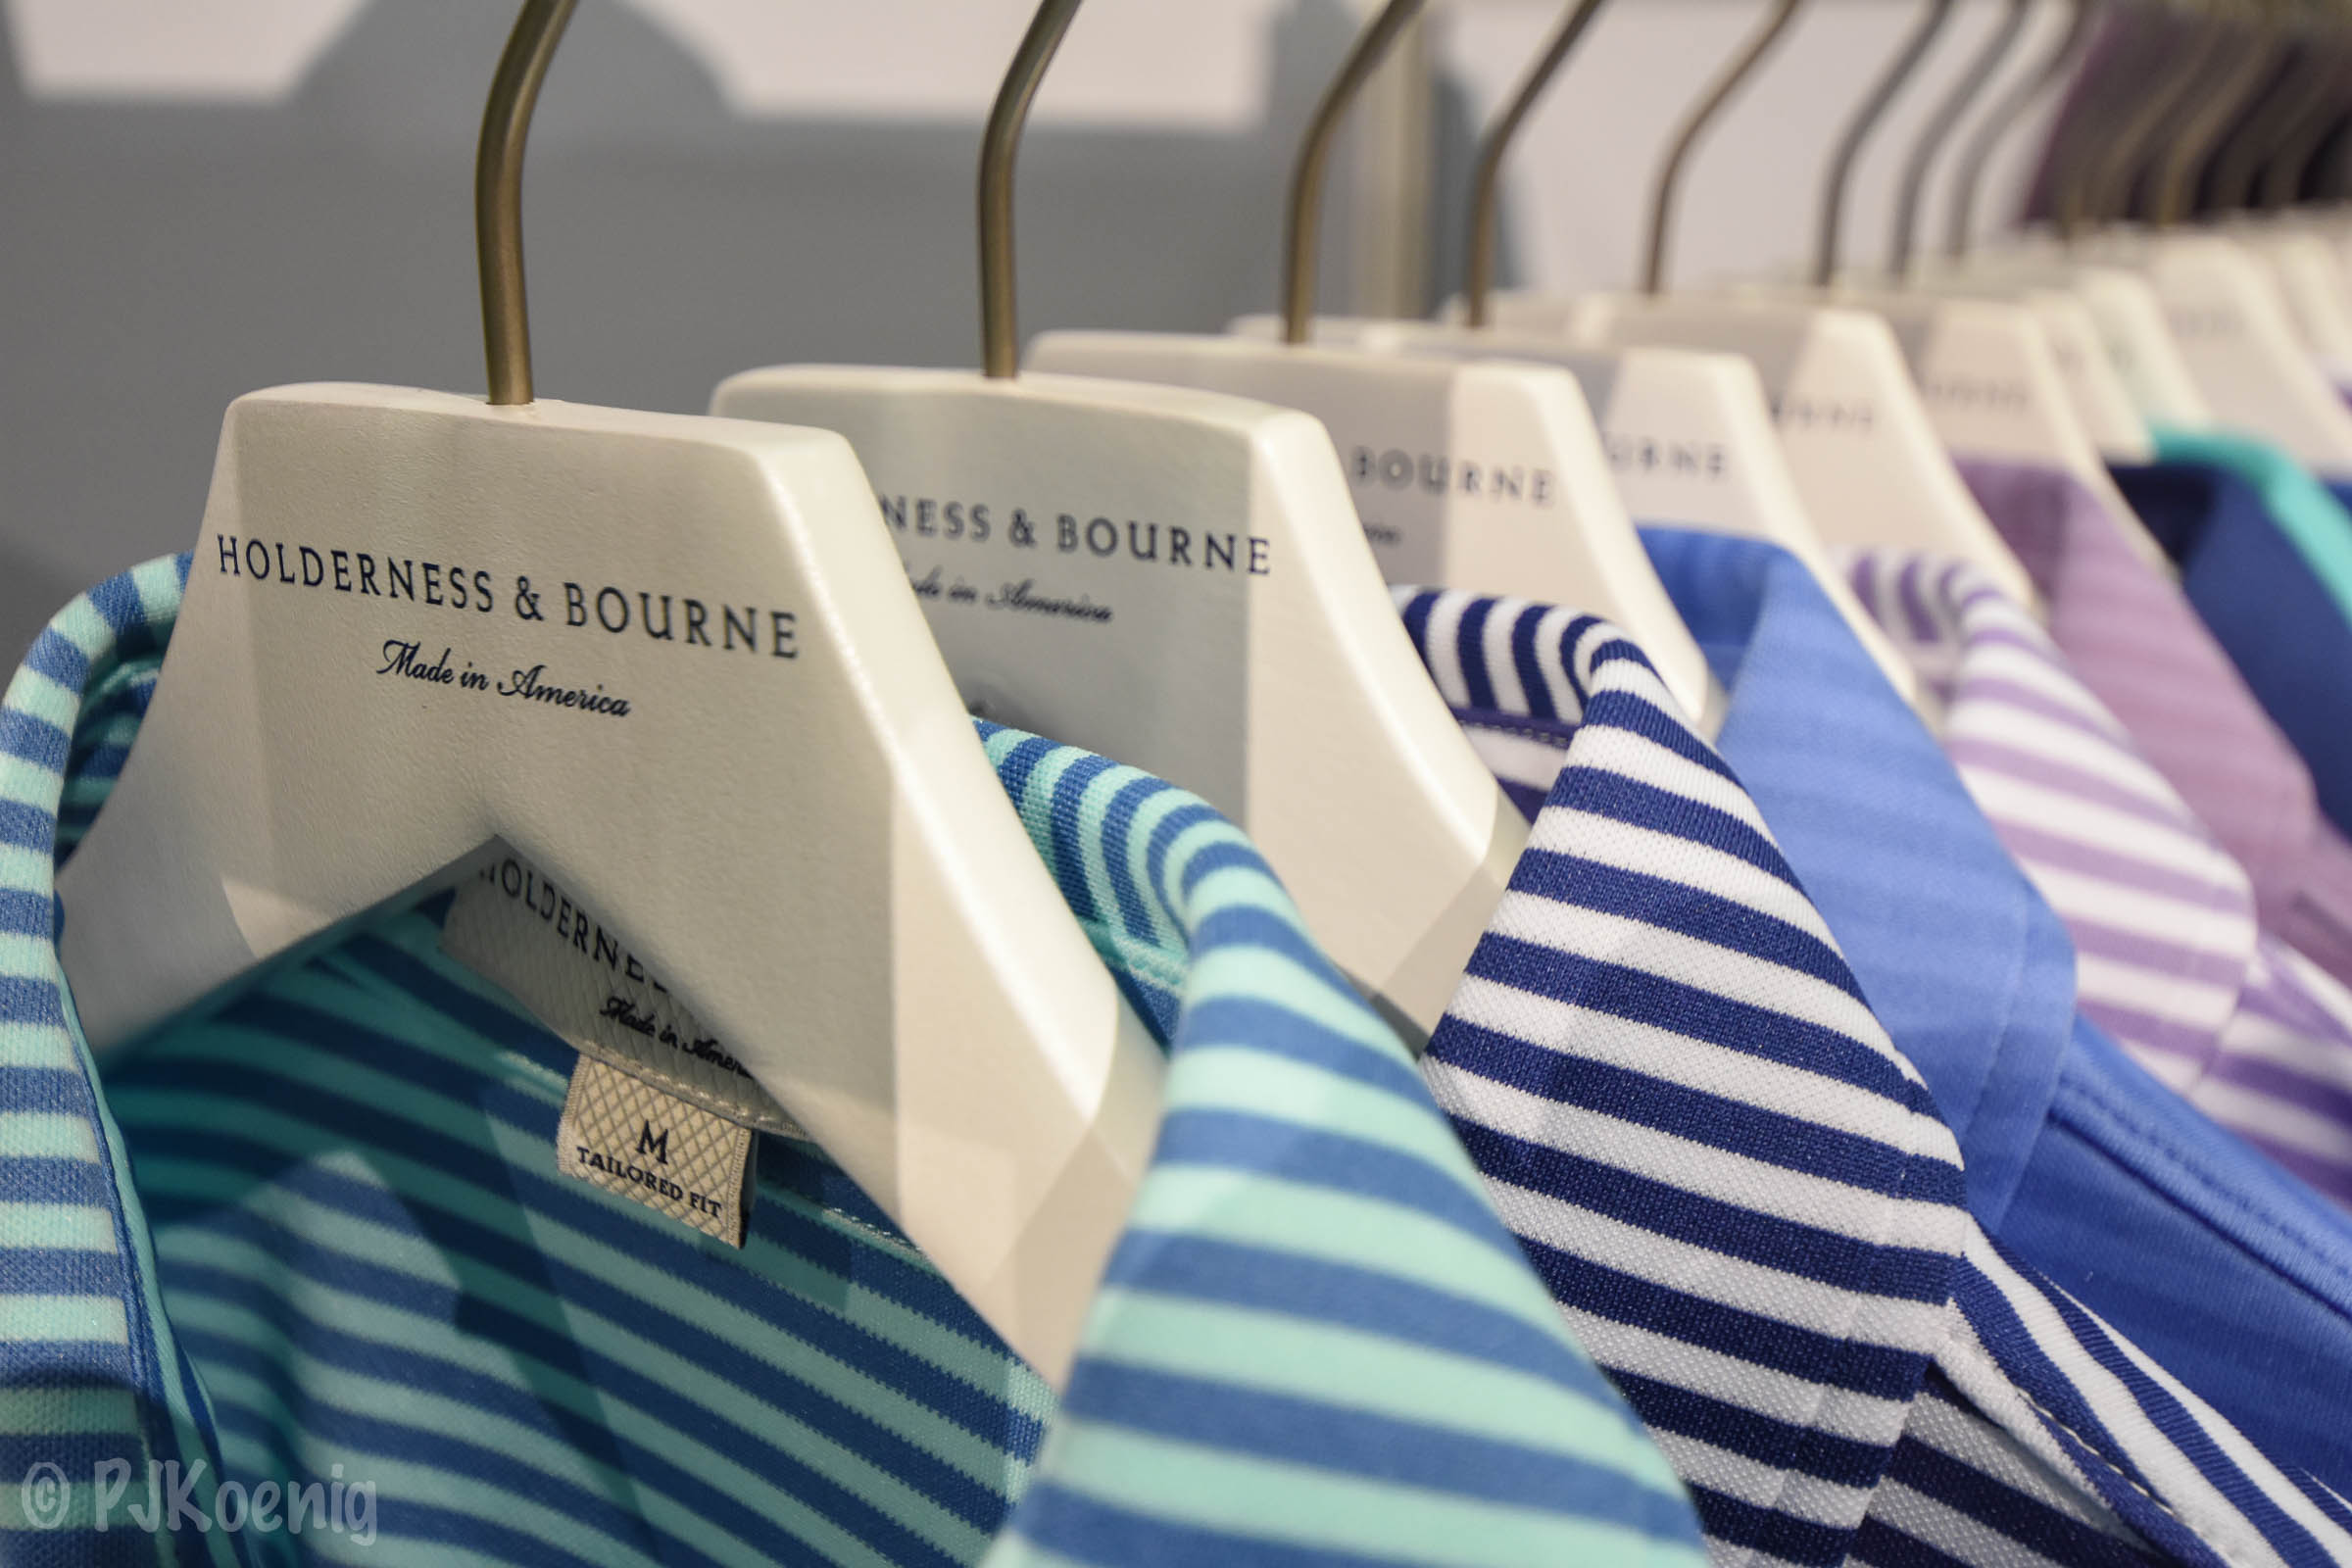 First time PGA show residents,  Holderness & Bourne  have some of the finest golf polos around. You'll have to wait until March to get these babies.